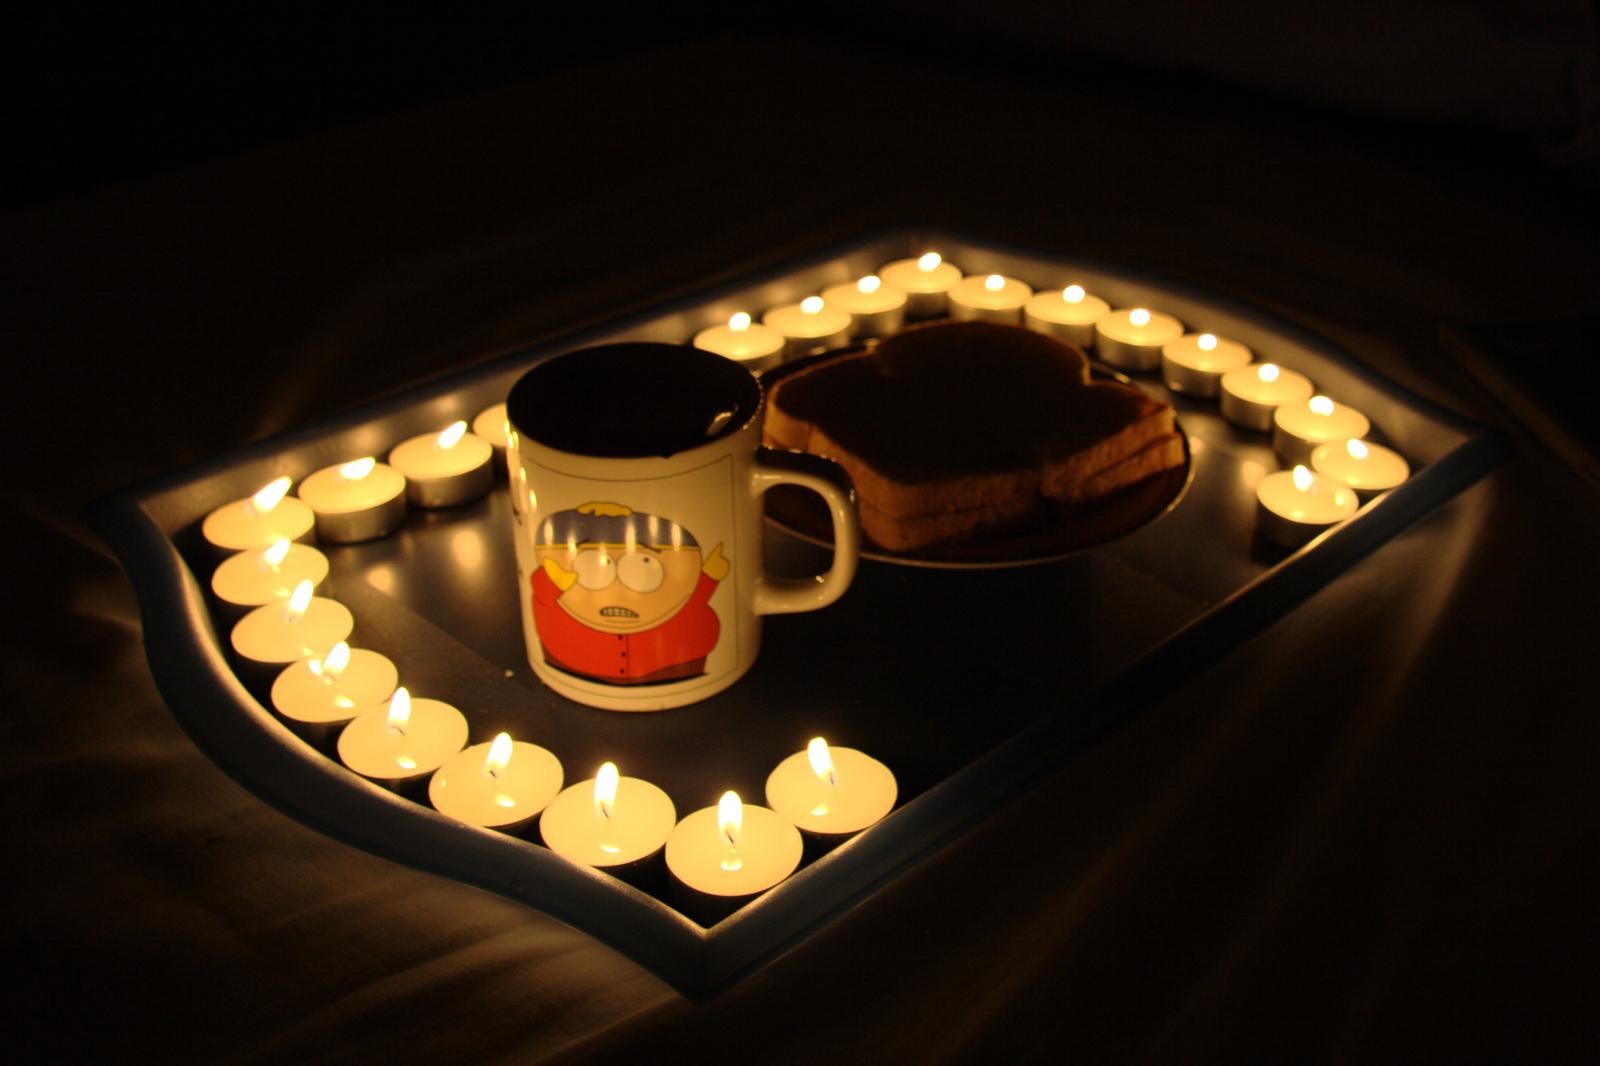 Breakfast on bed with candles